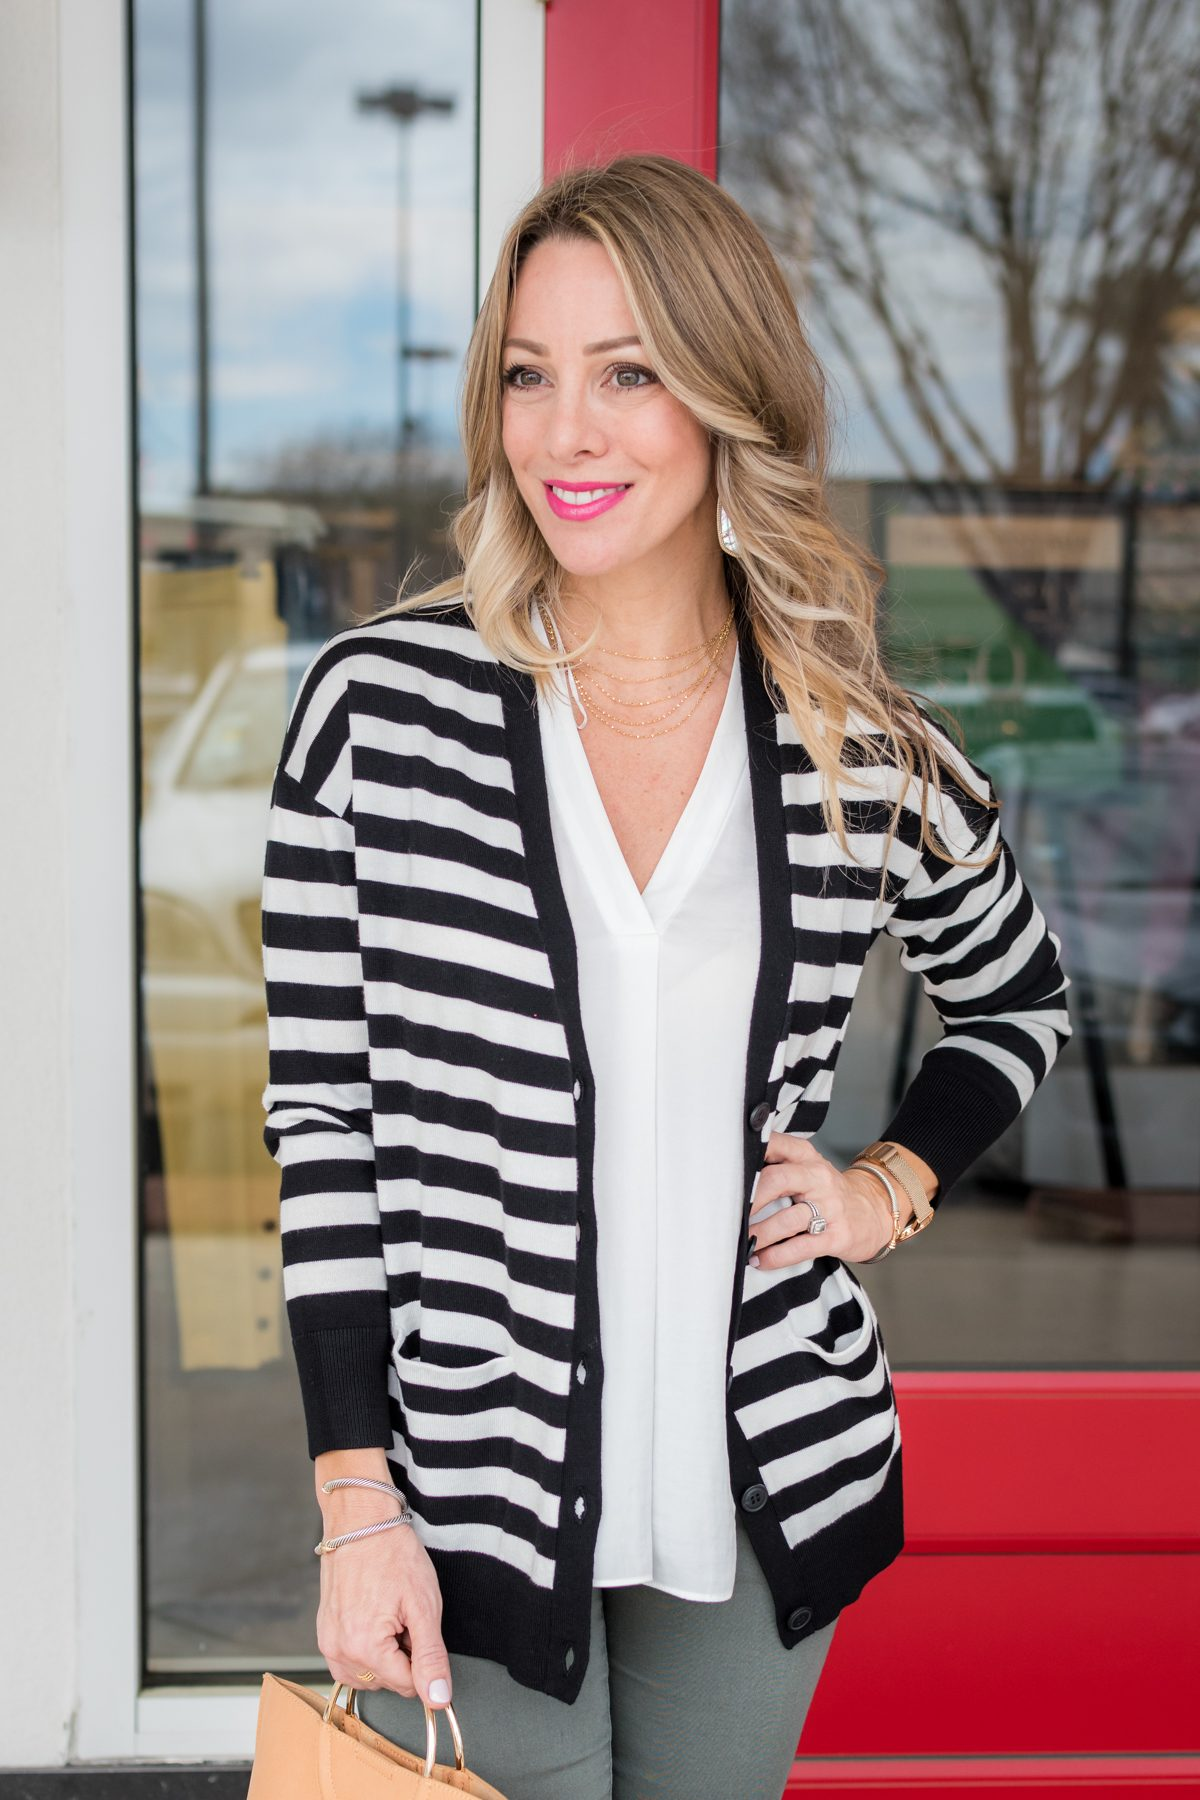 Skimmer Jeans and striped cardigan-1-3